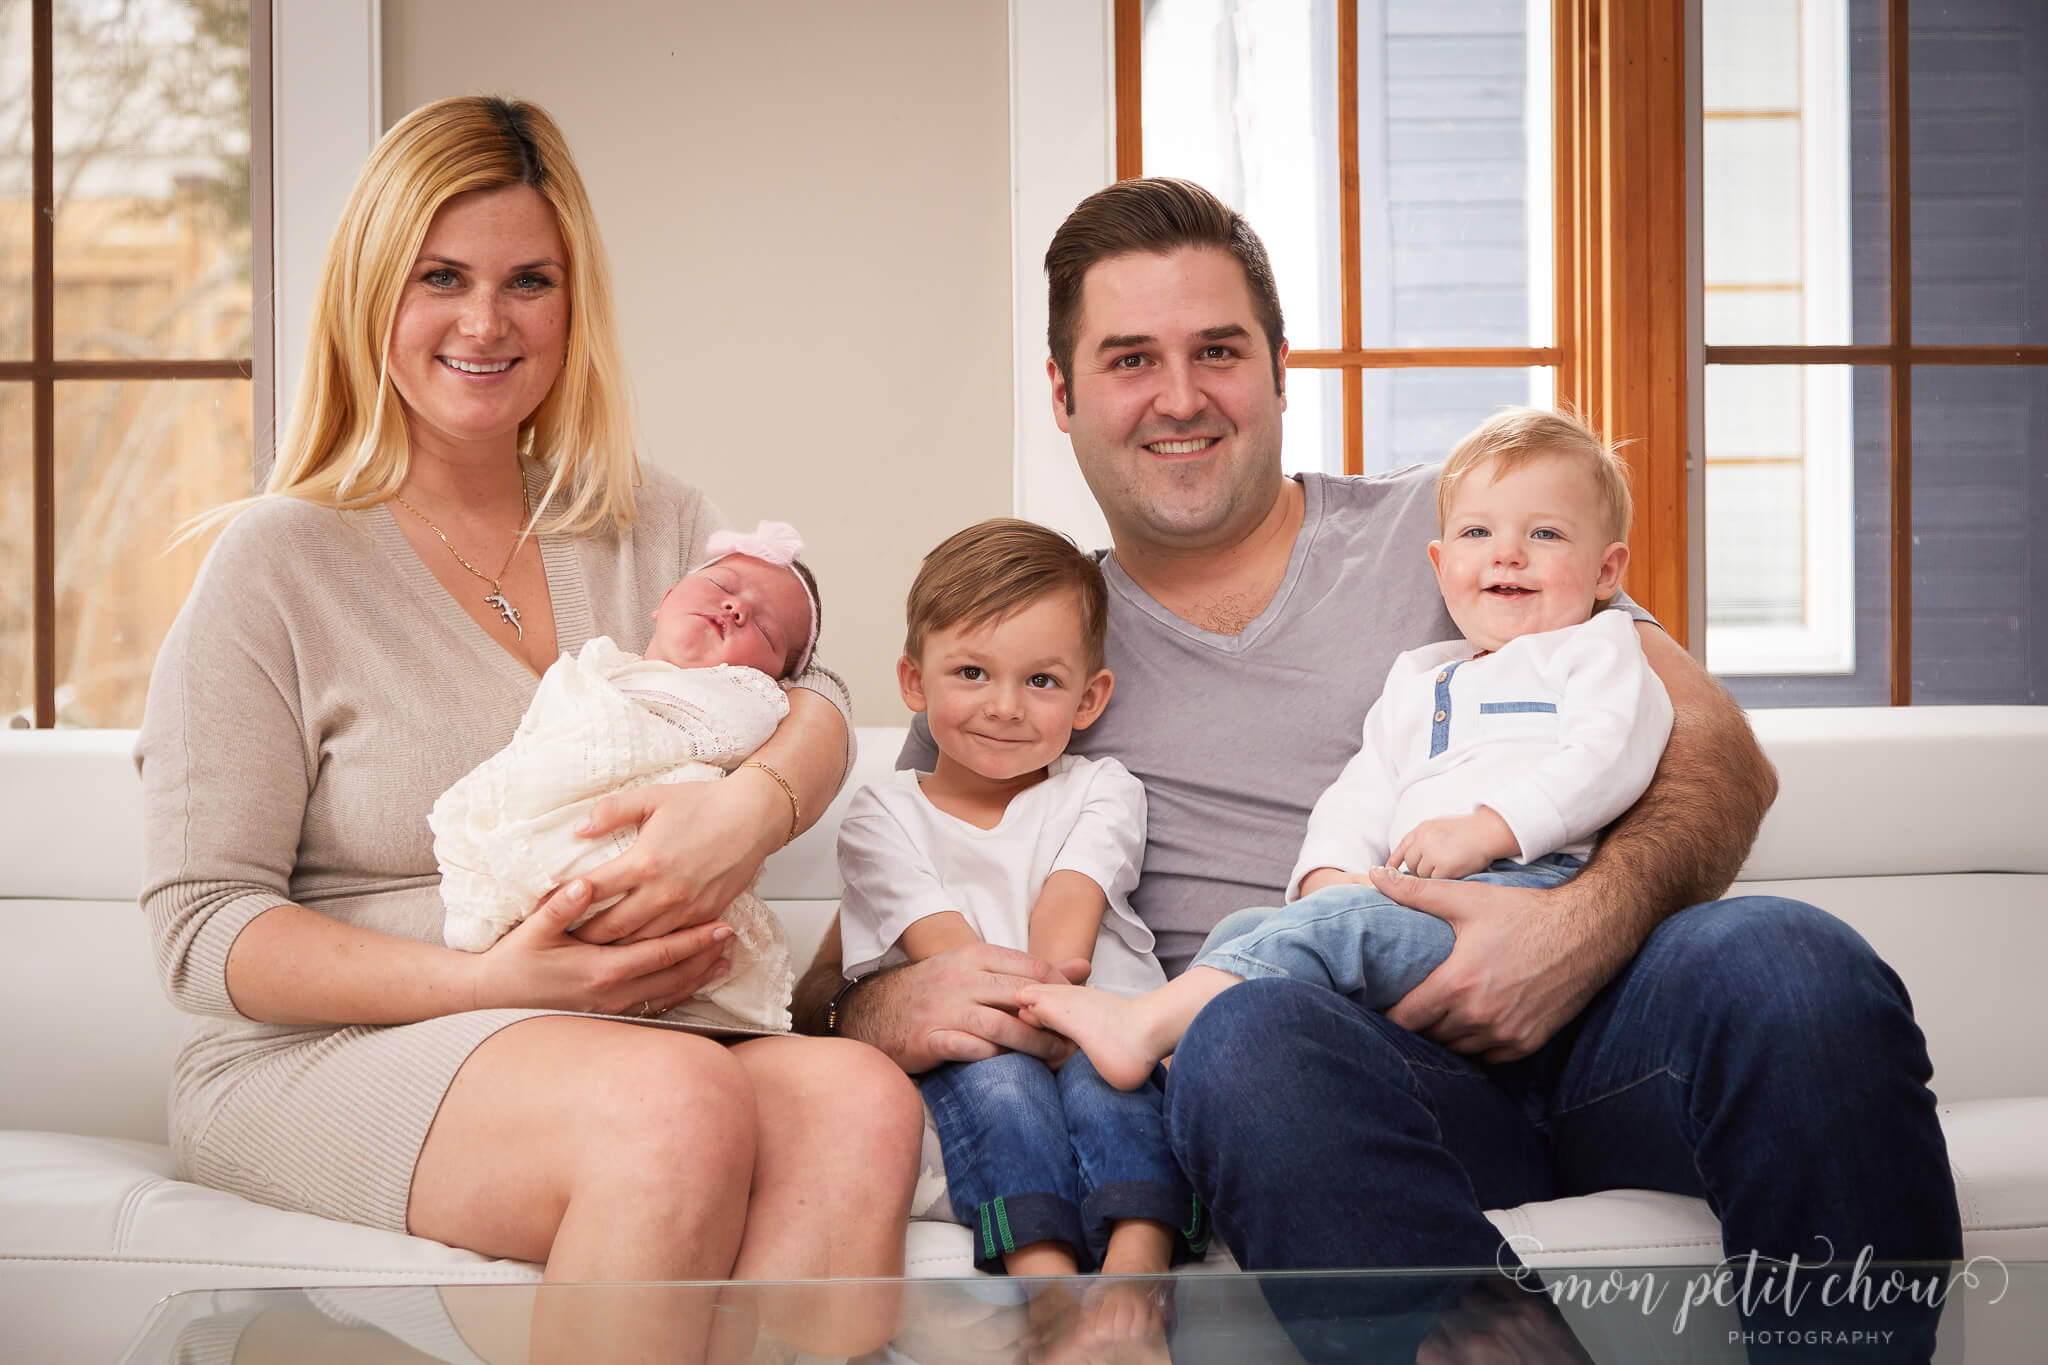 Photos of family with mom, dad, two toddlers and newborn, taken in Port Credit Toronto